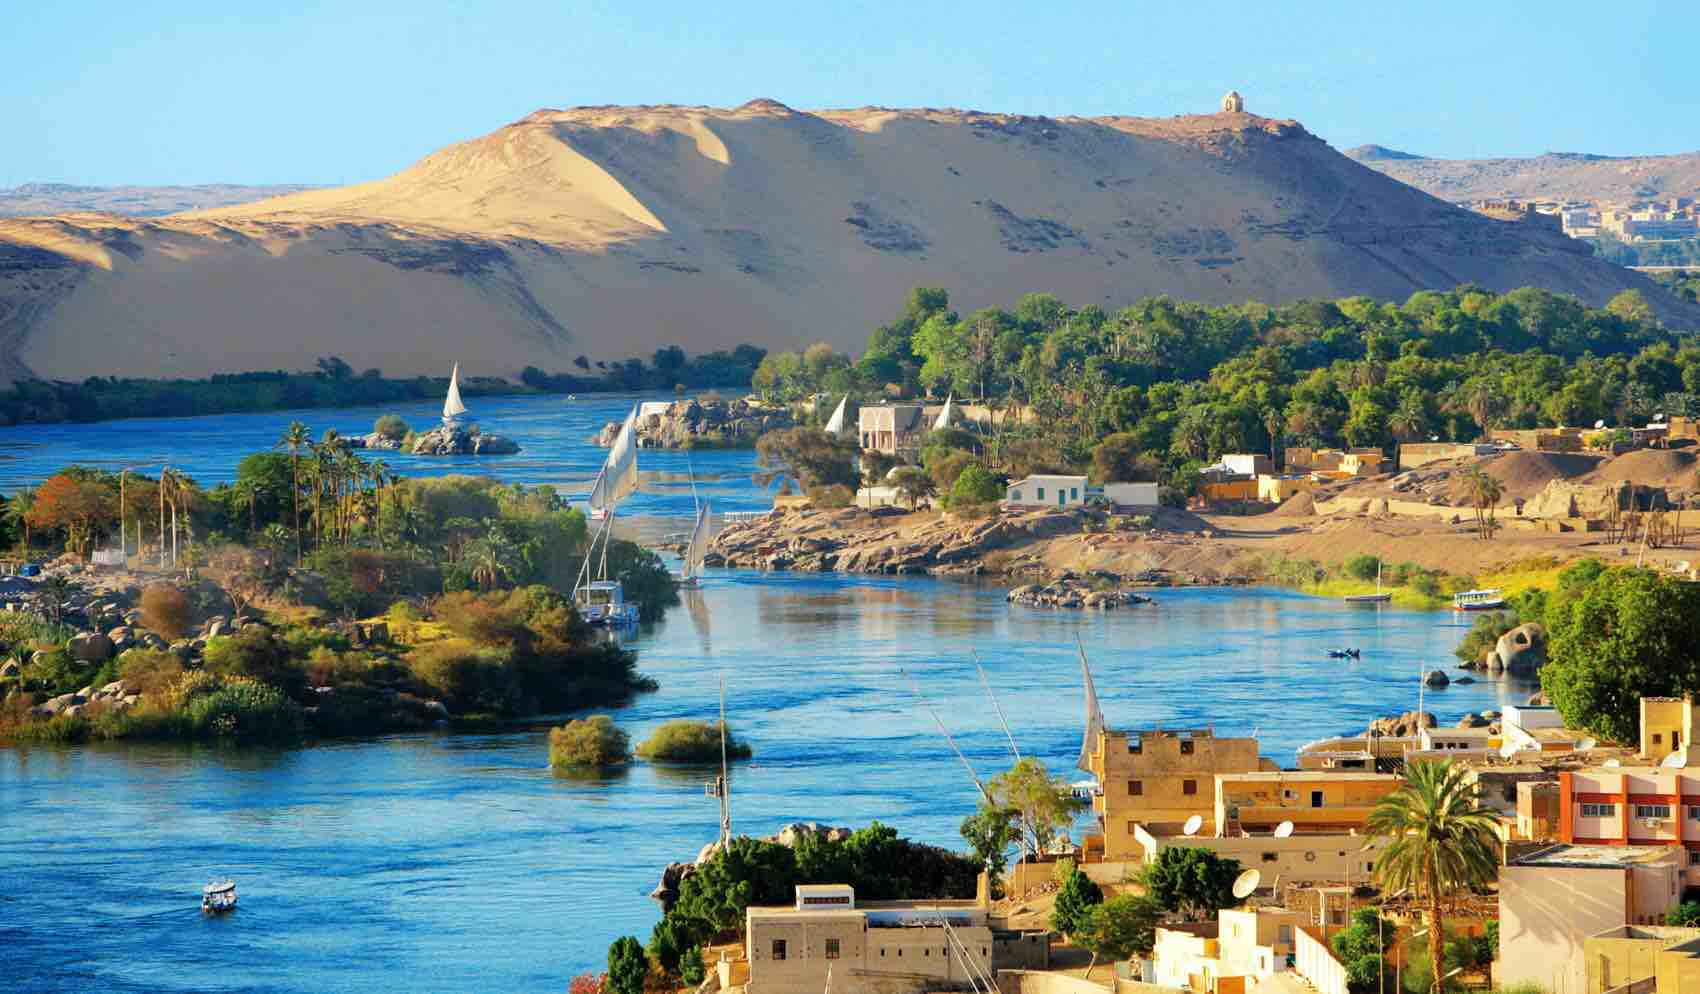 Aswan is a market and tourist centre just north of the Aswan Dam on the river Nile, Egypt.